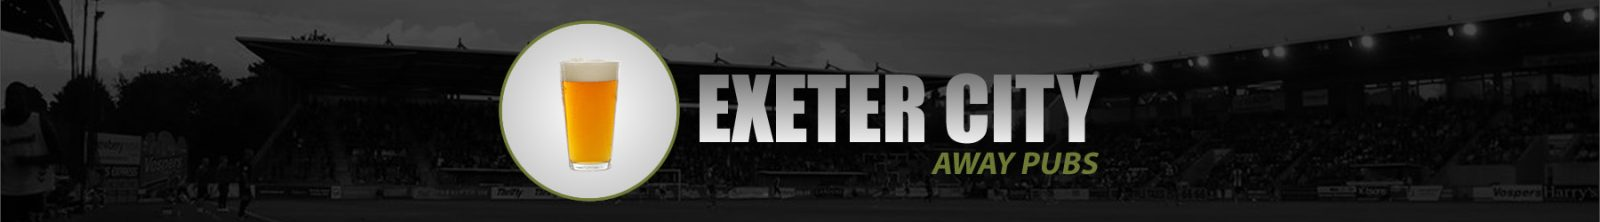 Exeter City Away Pubs